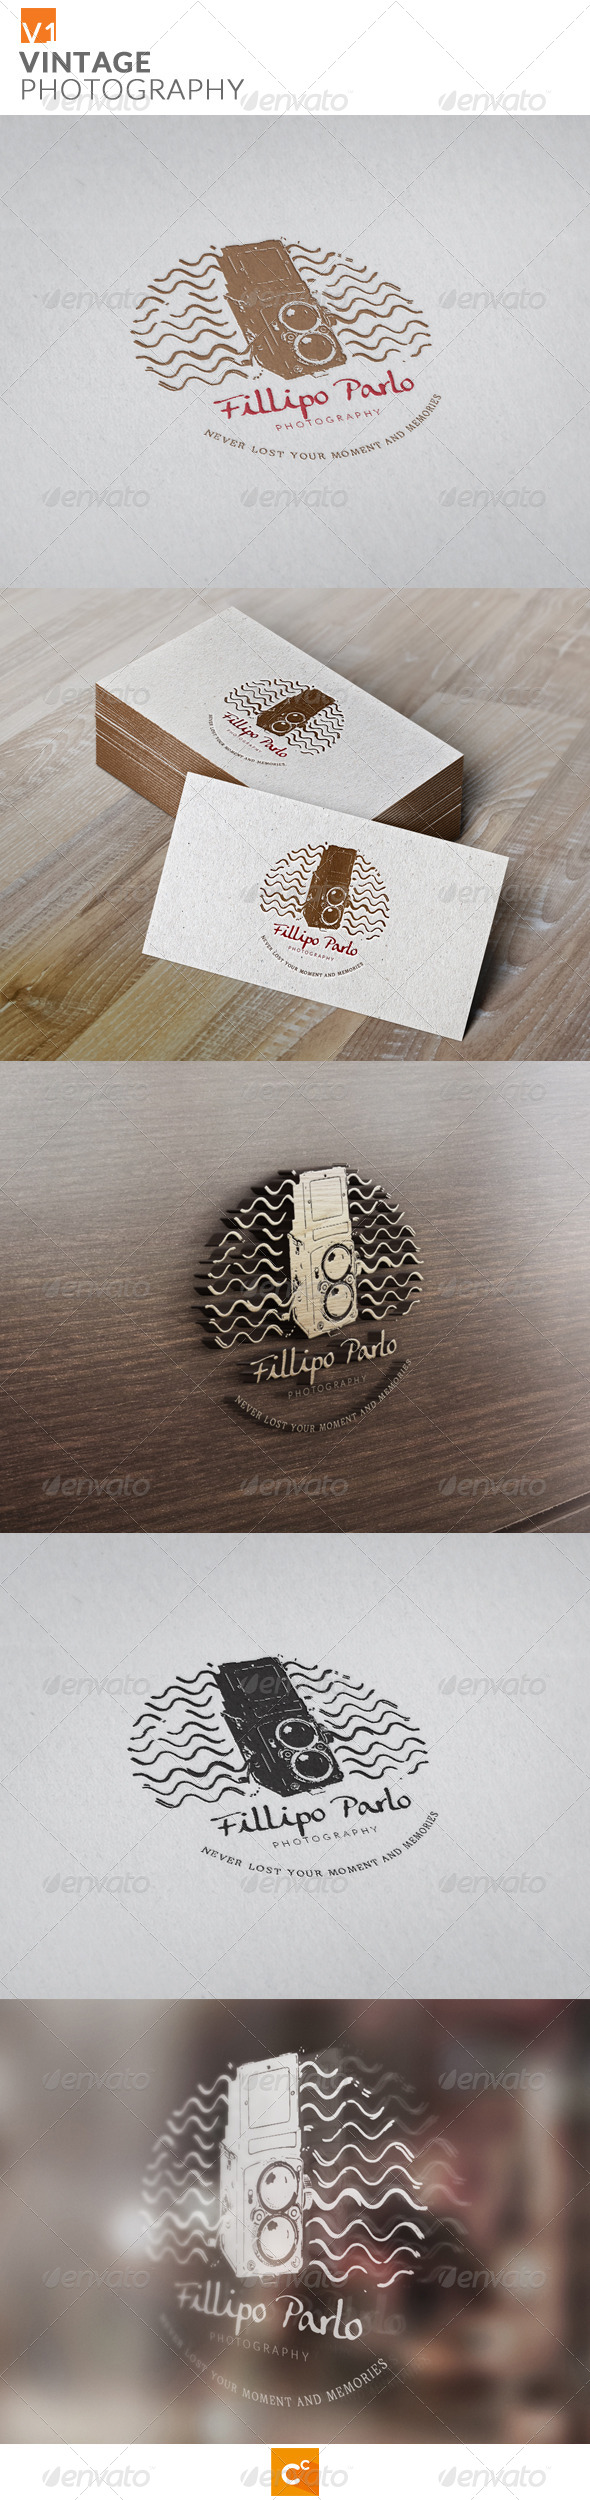 Vintage Photography - Objects Logo Templates